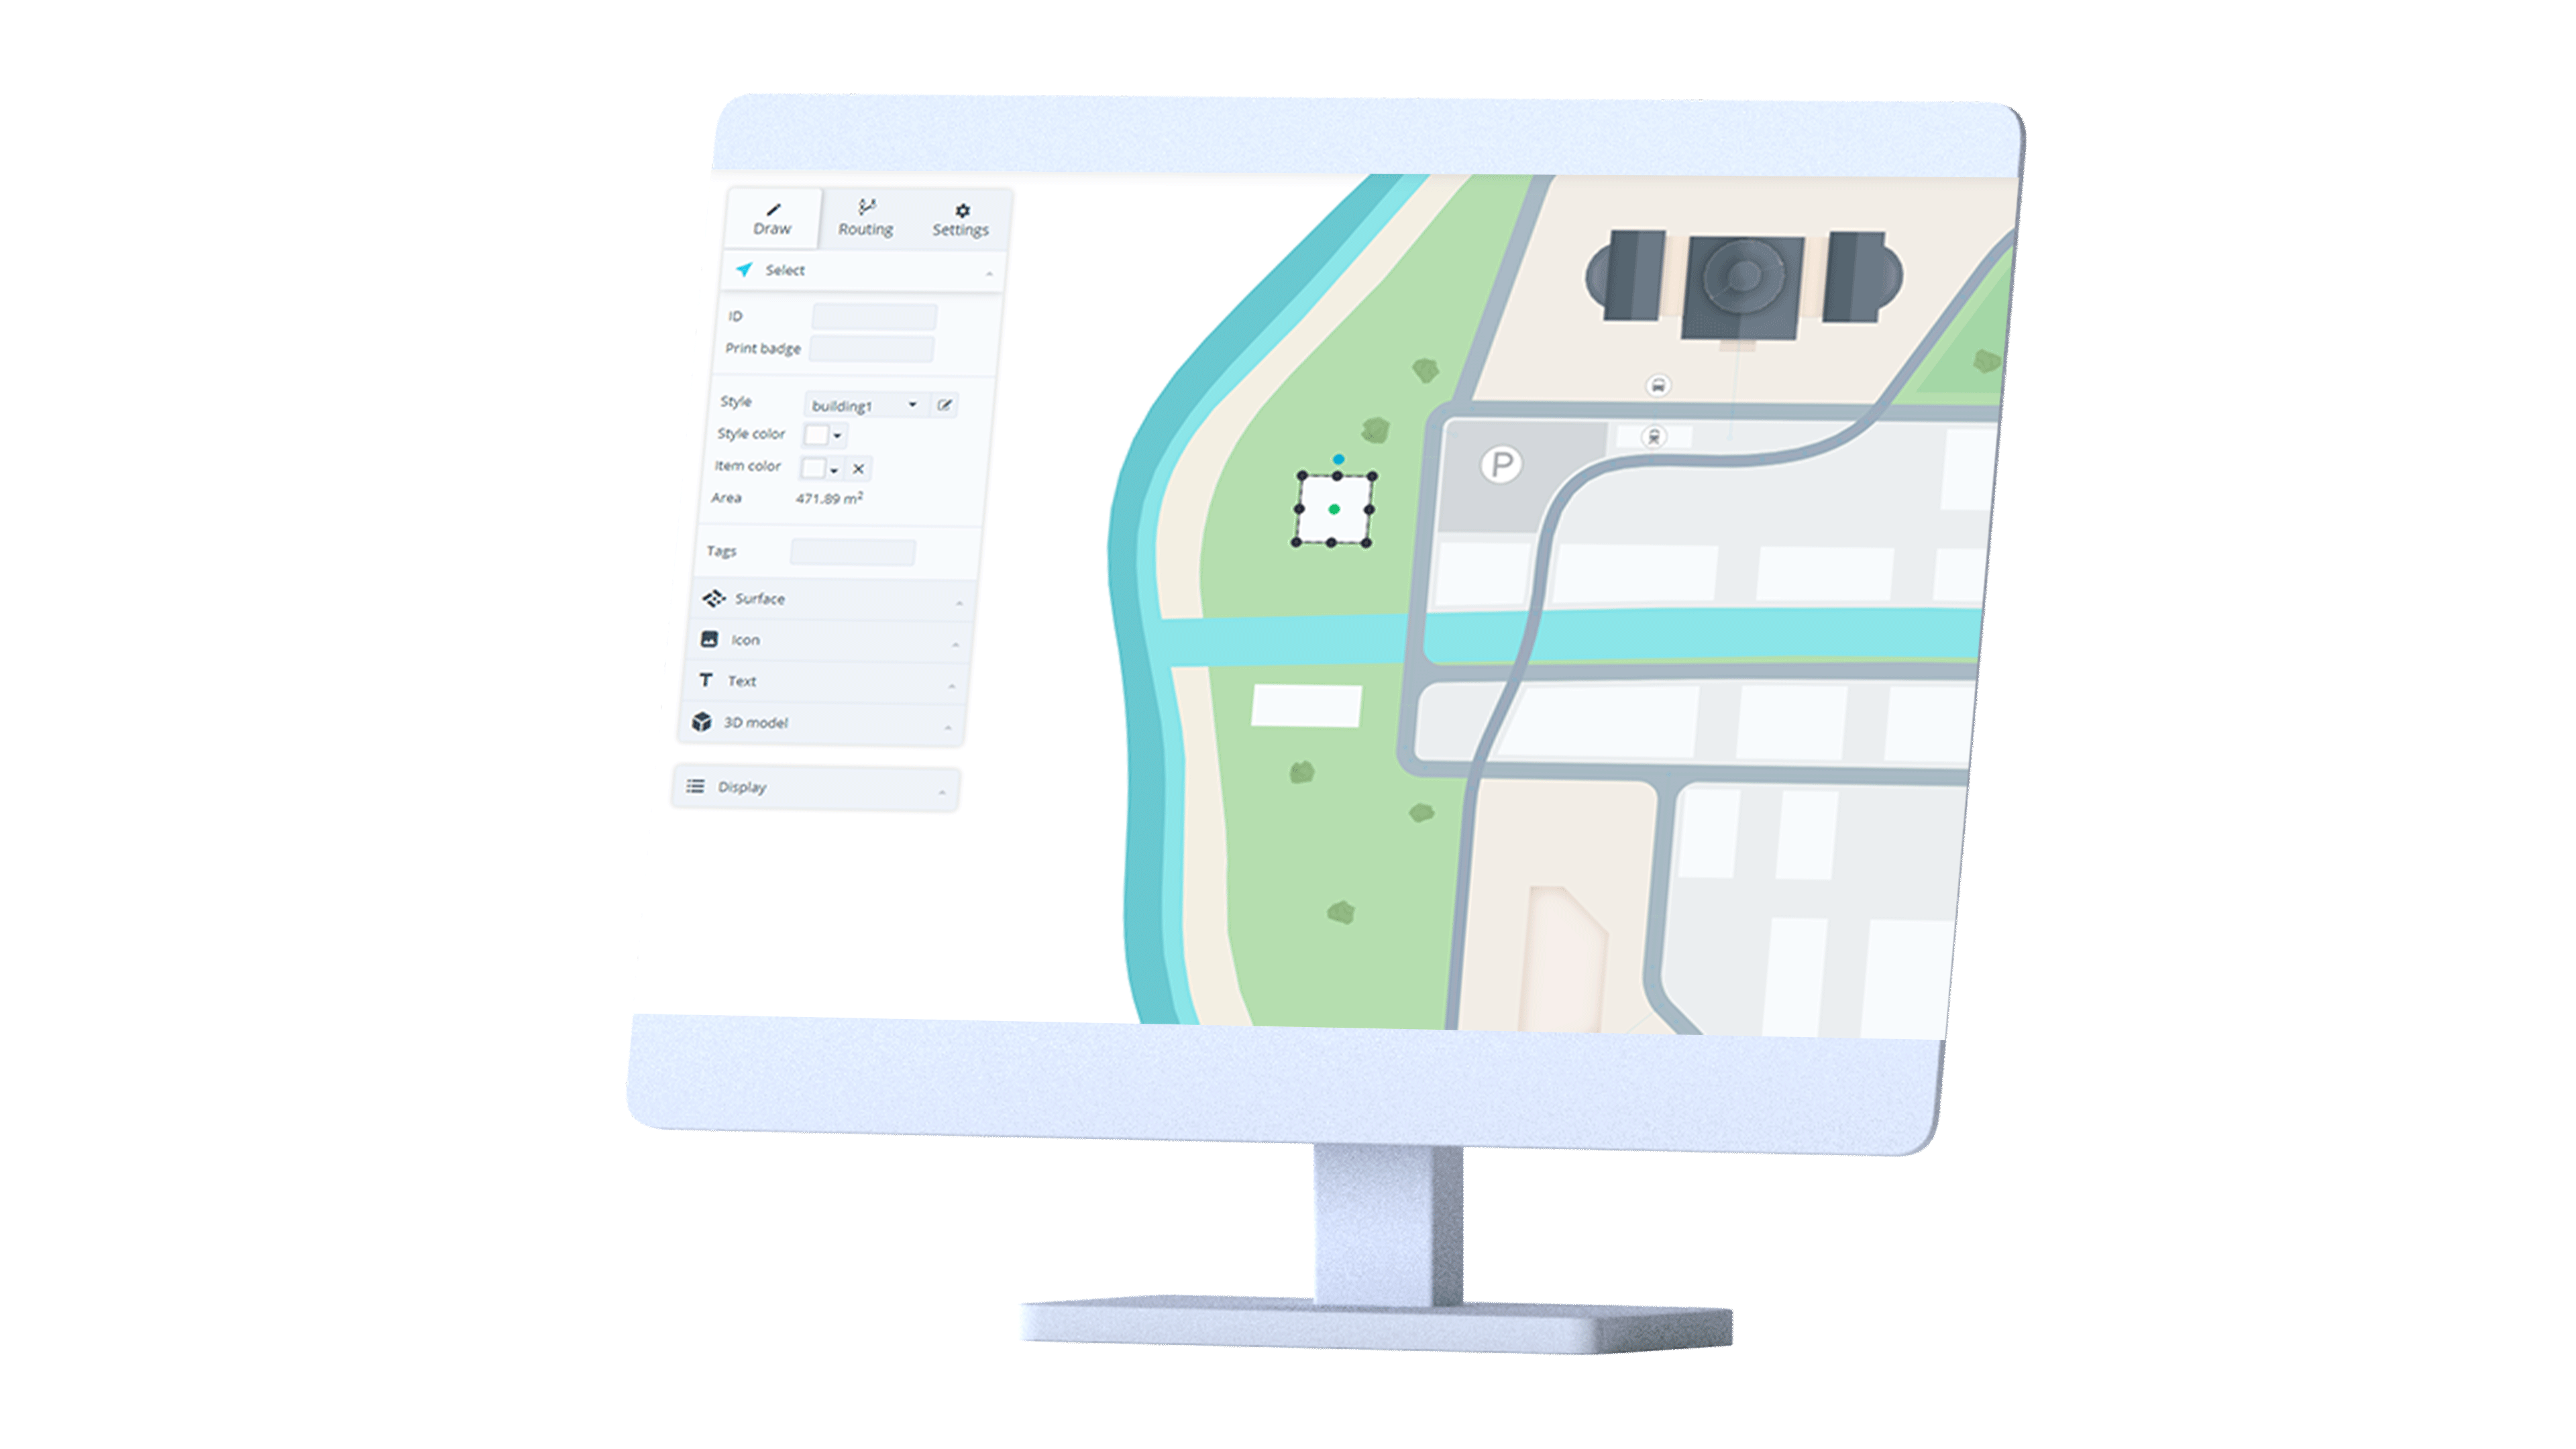 Creation and interaction with indoor maps